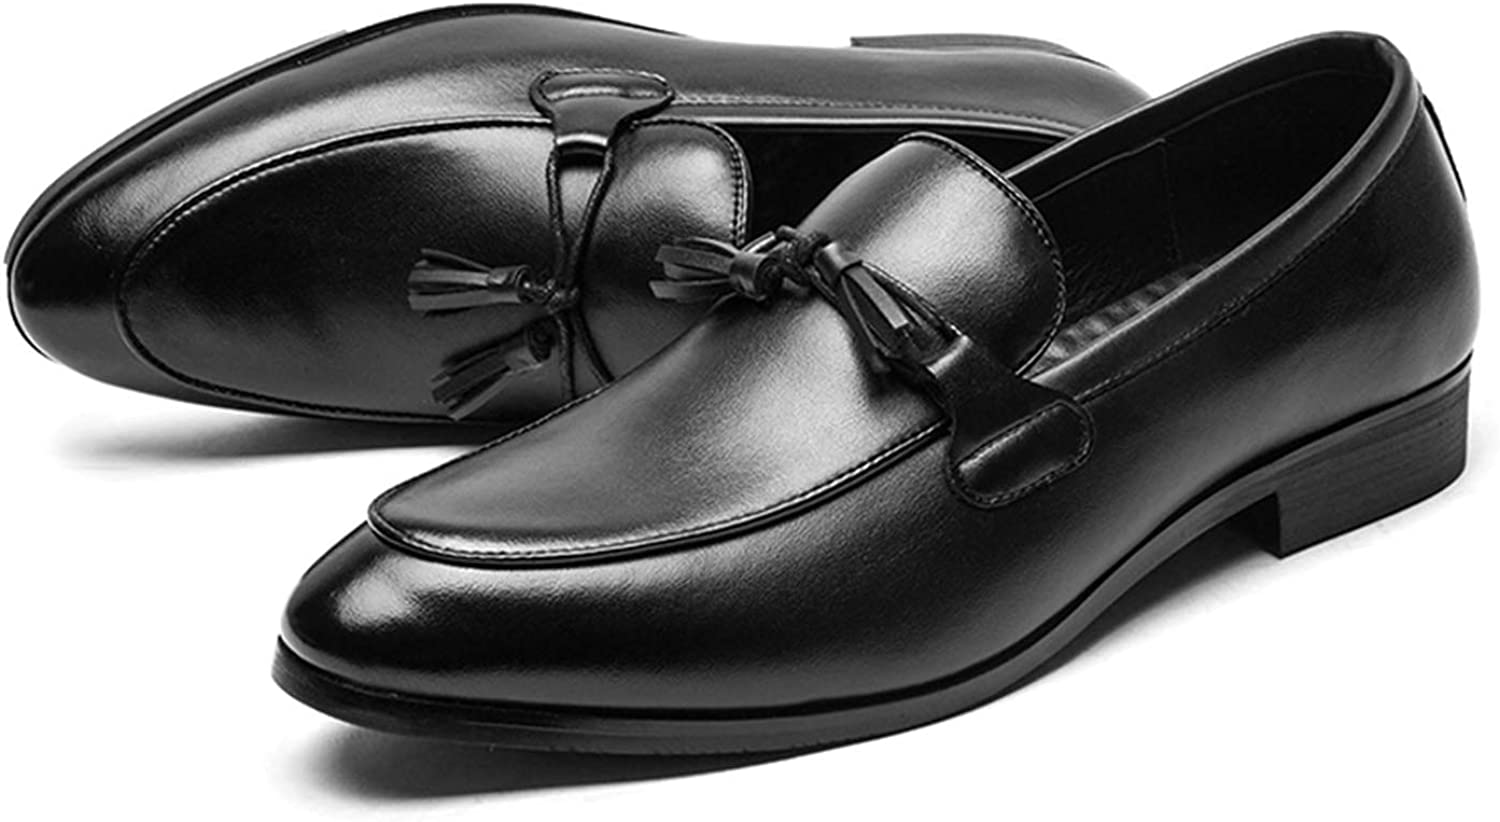 LEOED Mens Loafer Shoes Business Casual Leather Shoes with Tassel Modern Fashion Pointed Toe Dress Shoes Size 6-10